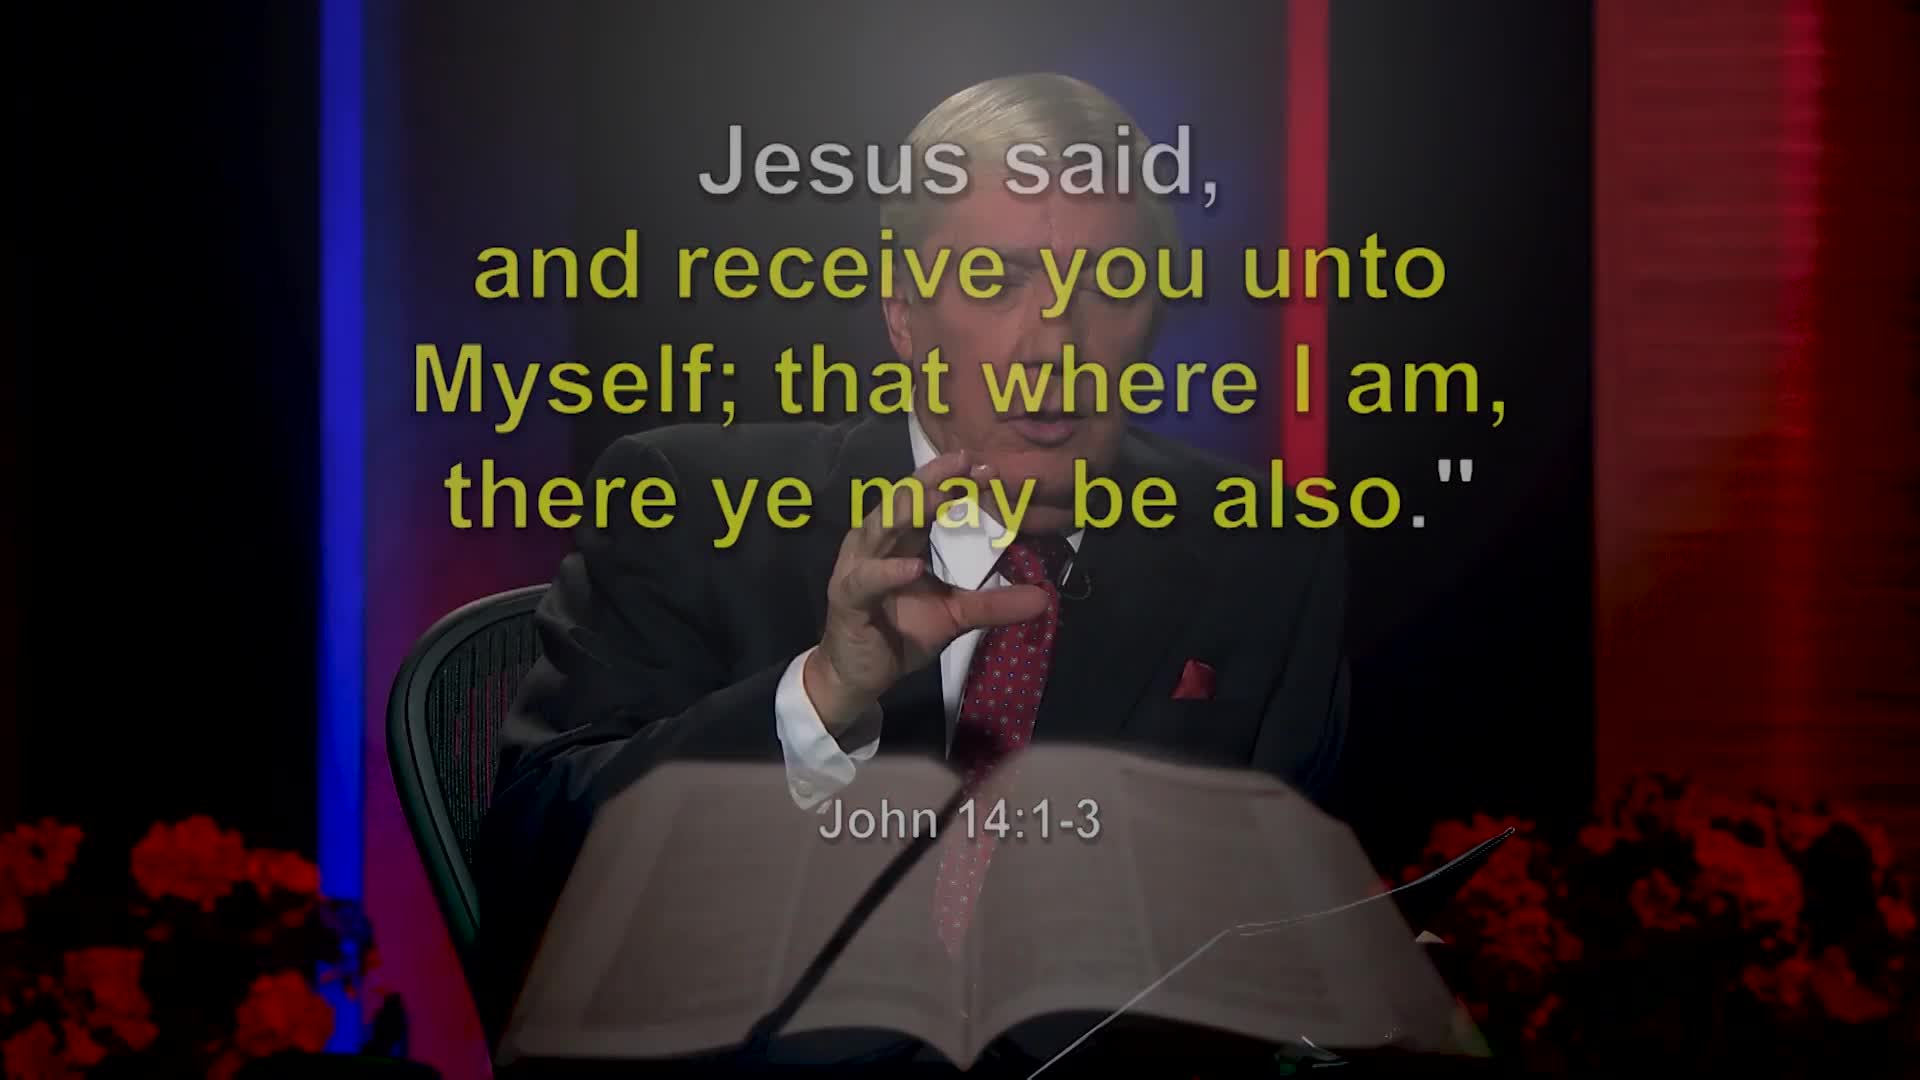 What does John 14:1-3 tell us about the rapture?